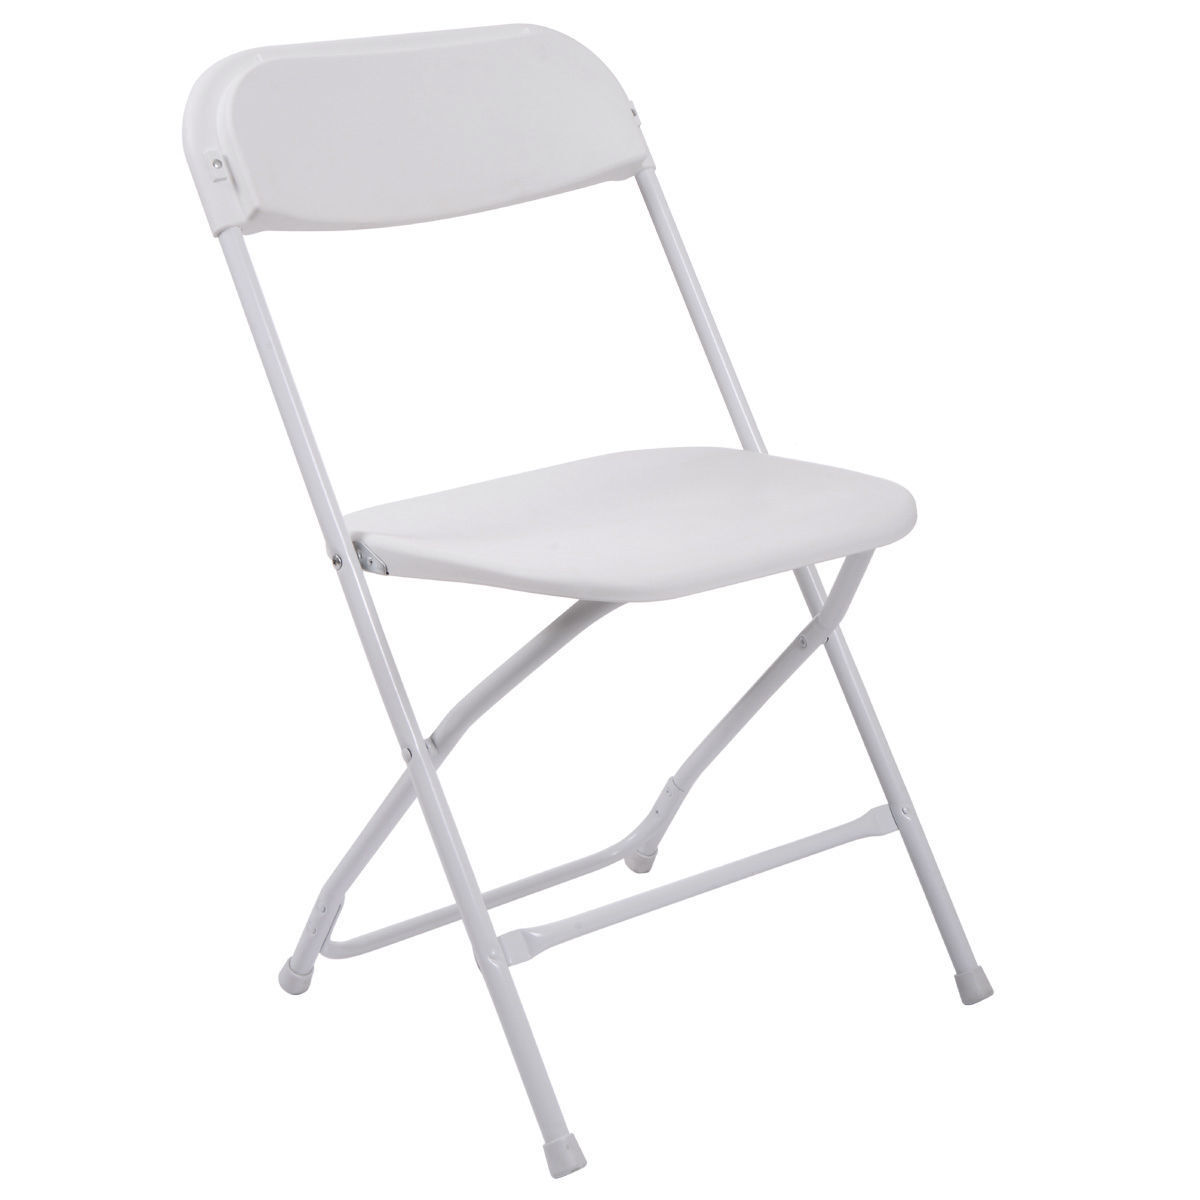 8 Pc Commercial White Plastic Folding Chairs Stackable Wedding Party Event Chair